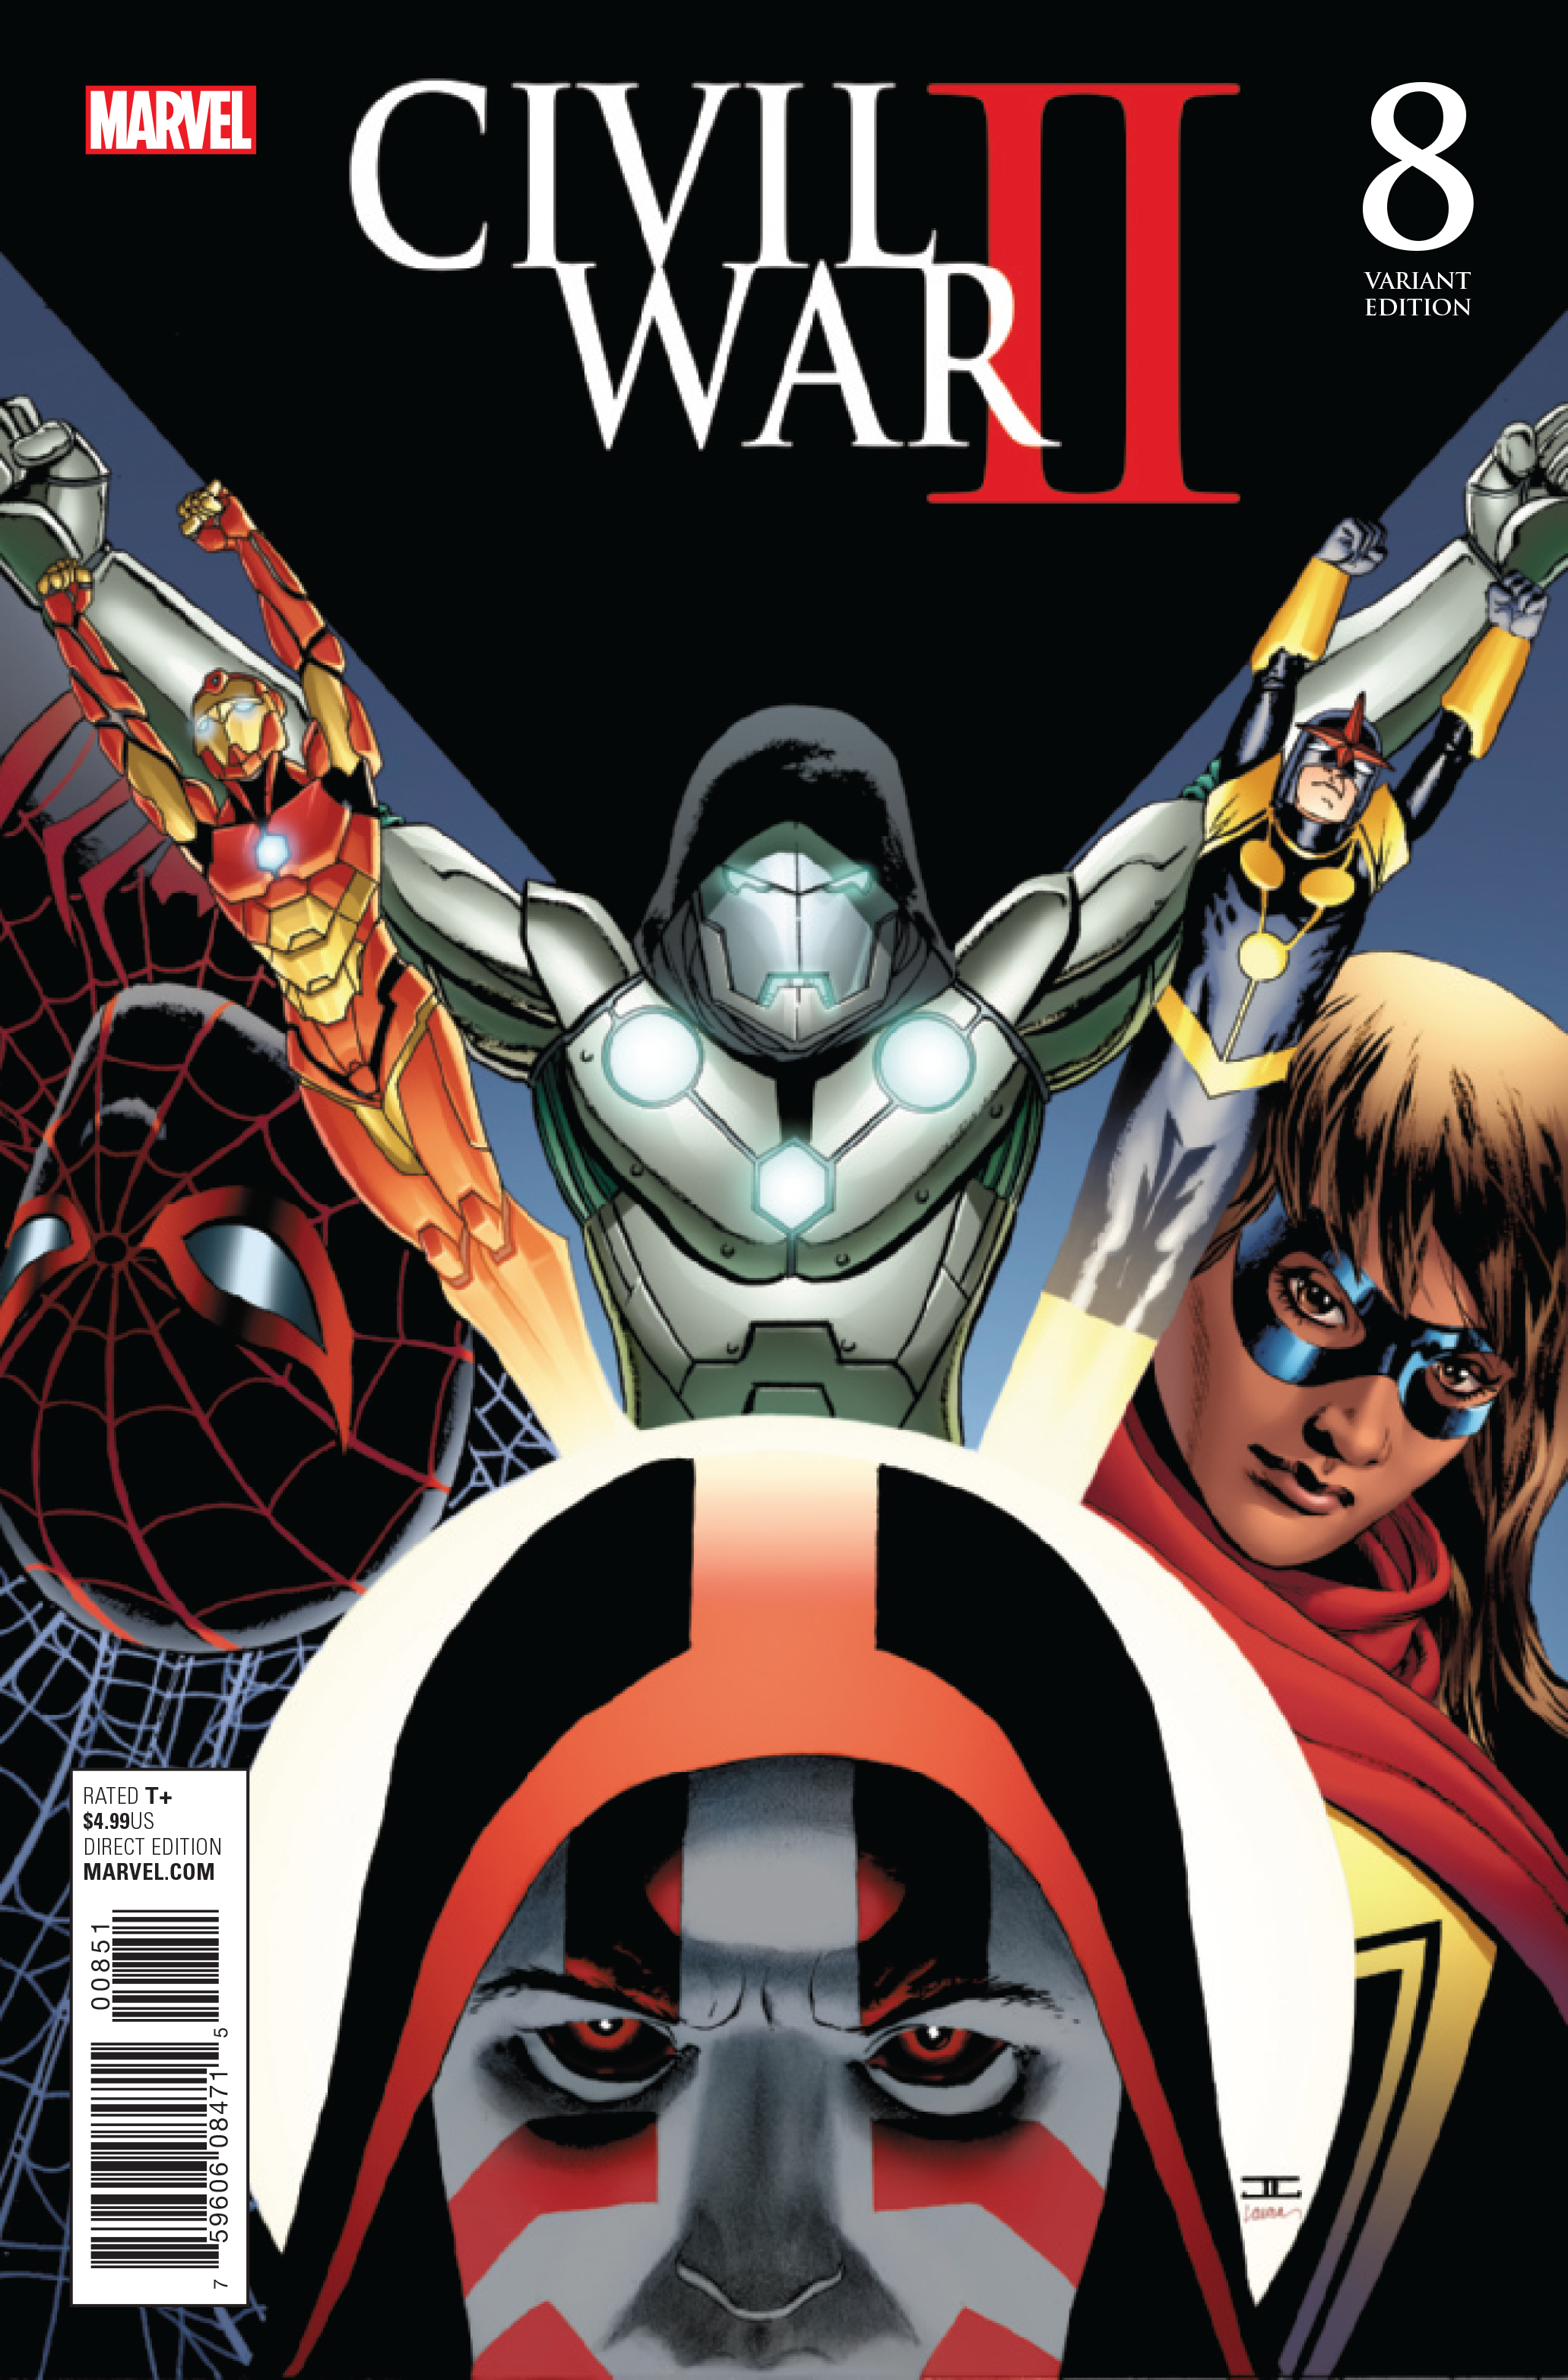 CIVIL WAR II #8 (OF 8) CASSADAY VAR